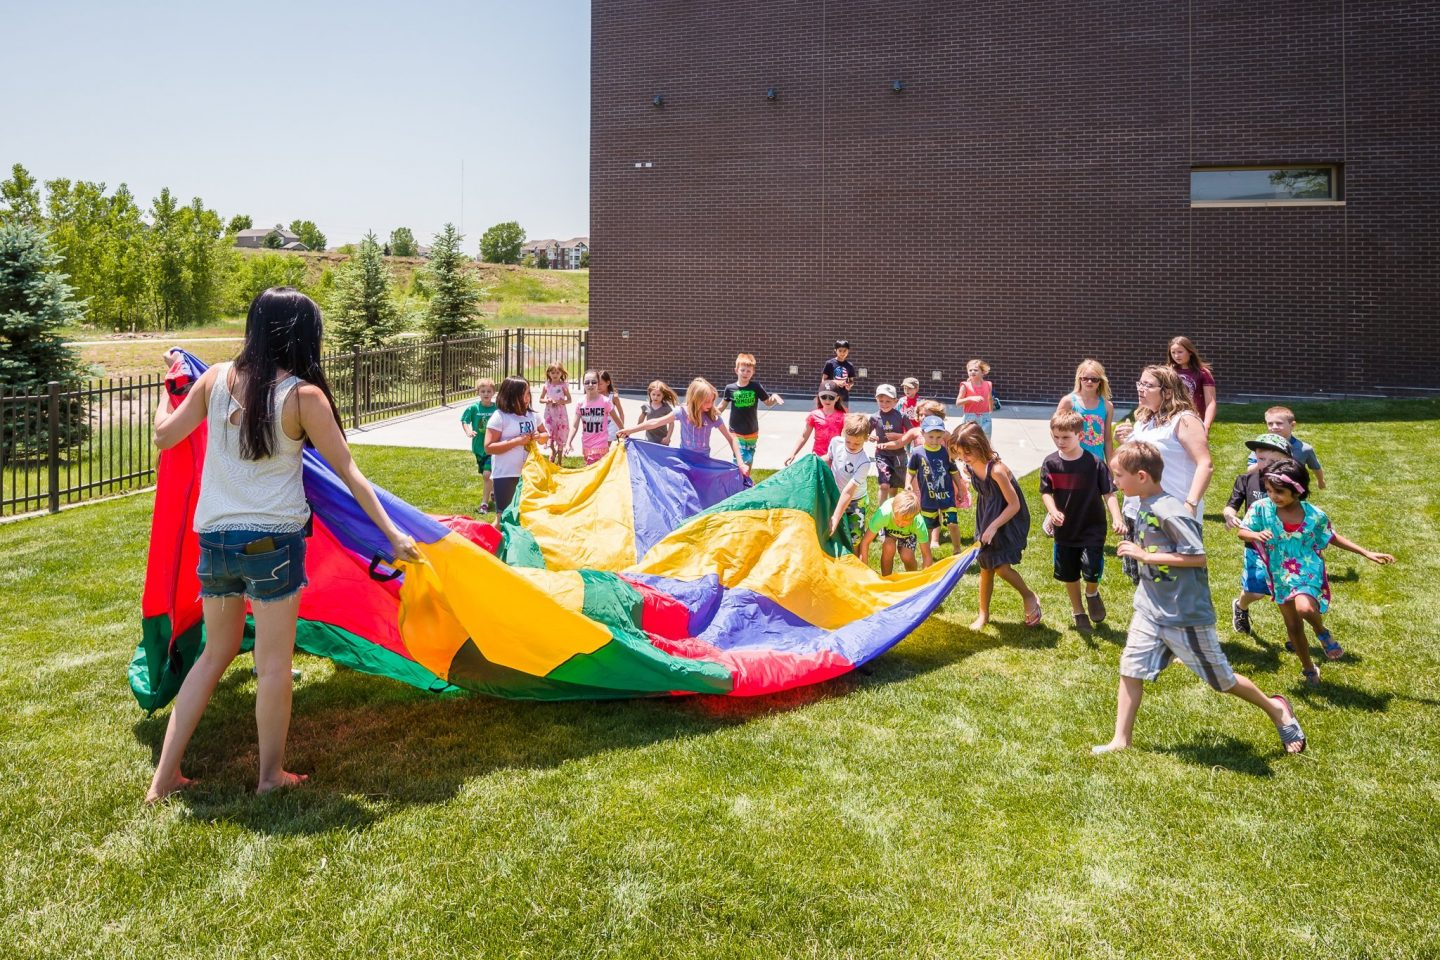 Kids playing with parachute outside of the PACE Center in Parker, CO.